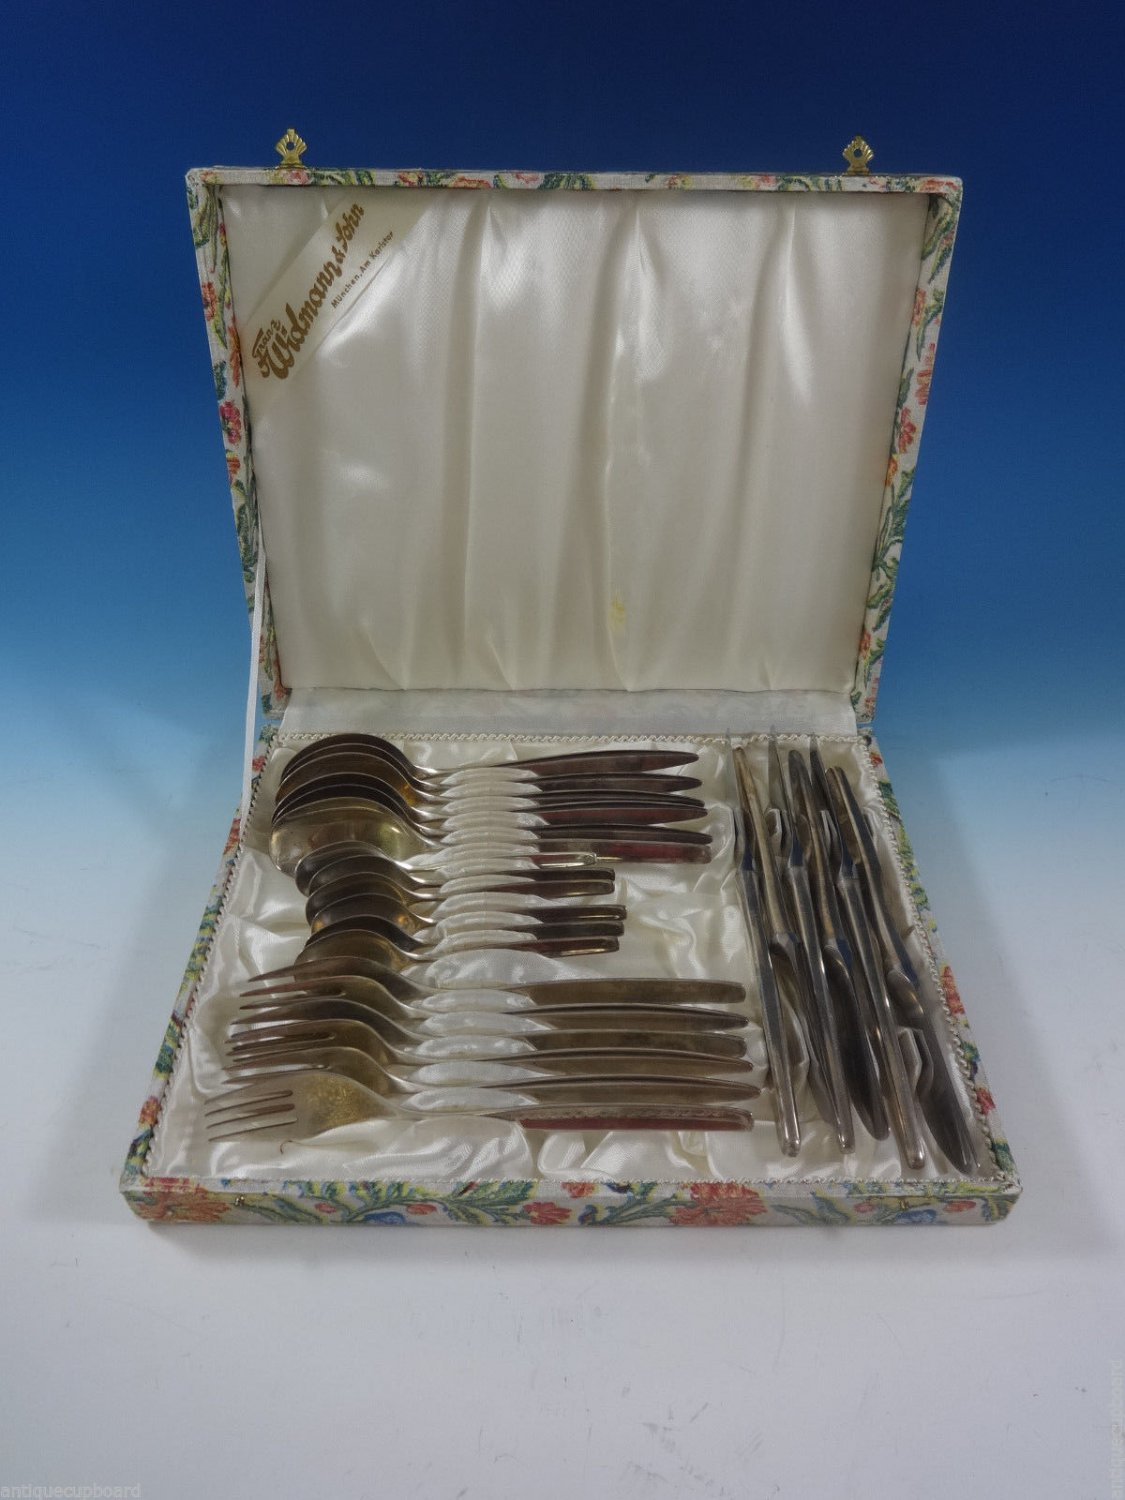 800 Silver Wmf #193 Flatware Set Service Dinner Size 24 Pieces In Vintage Box